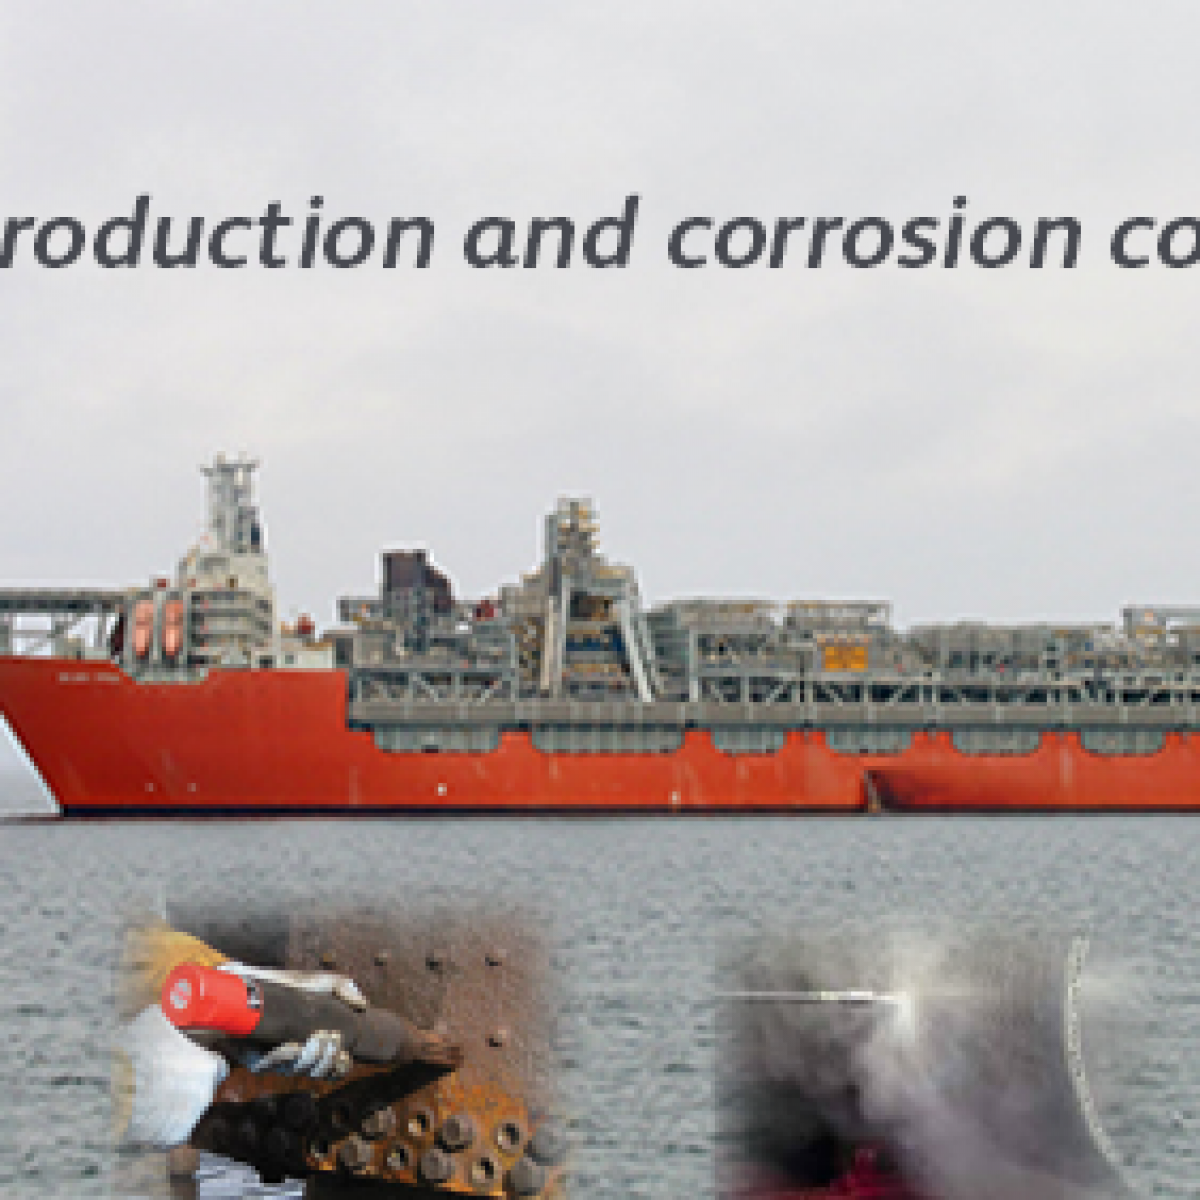 FPSO - Introduction and corrosion control